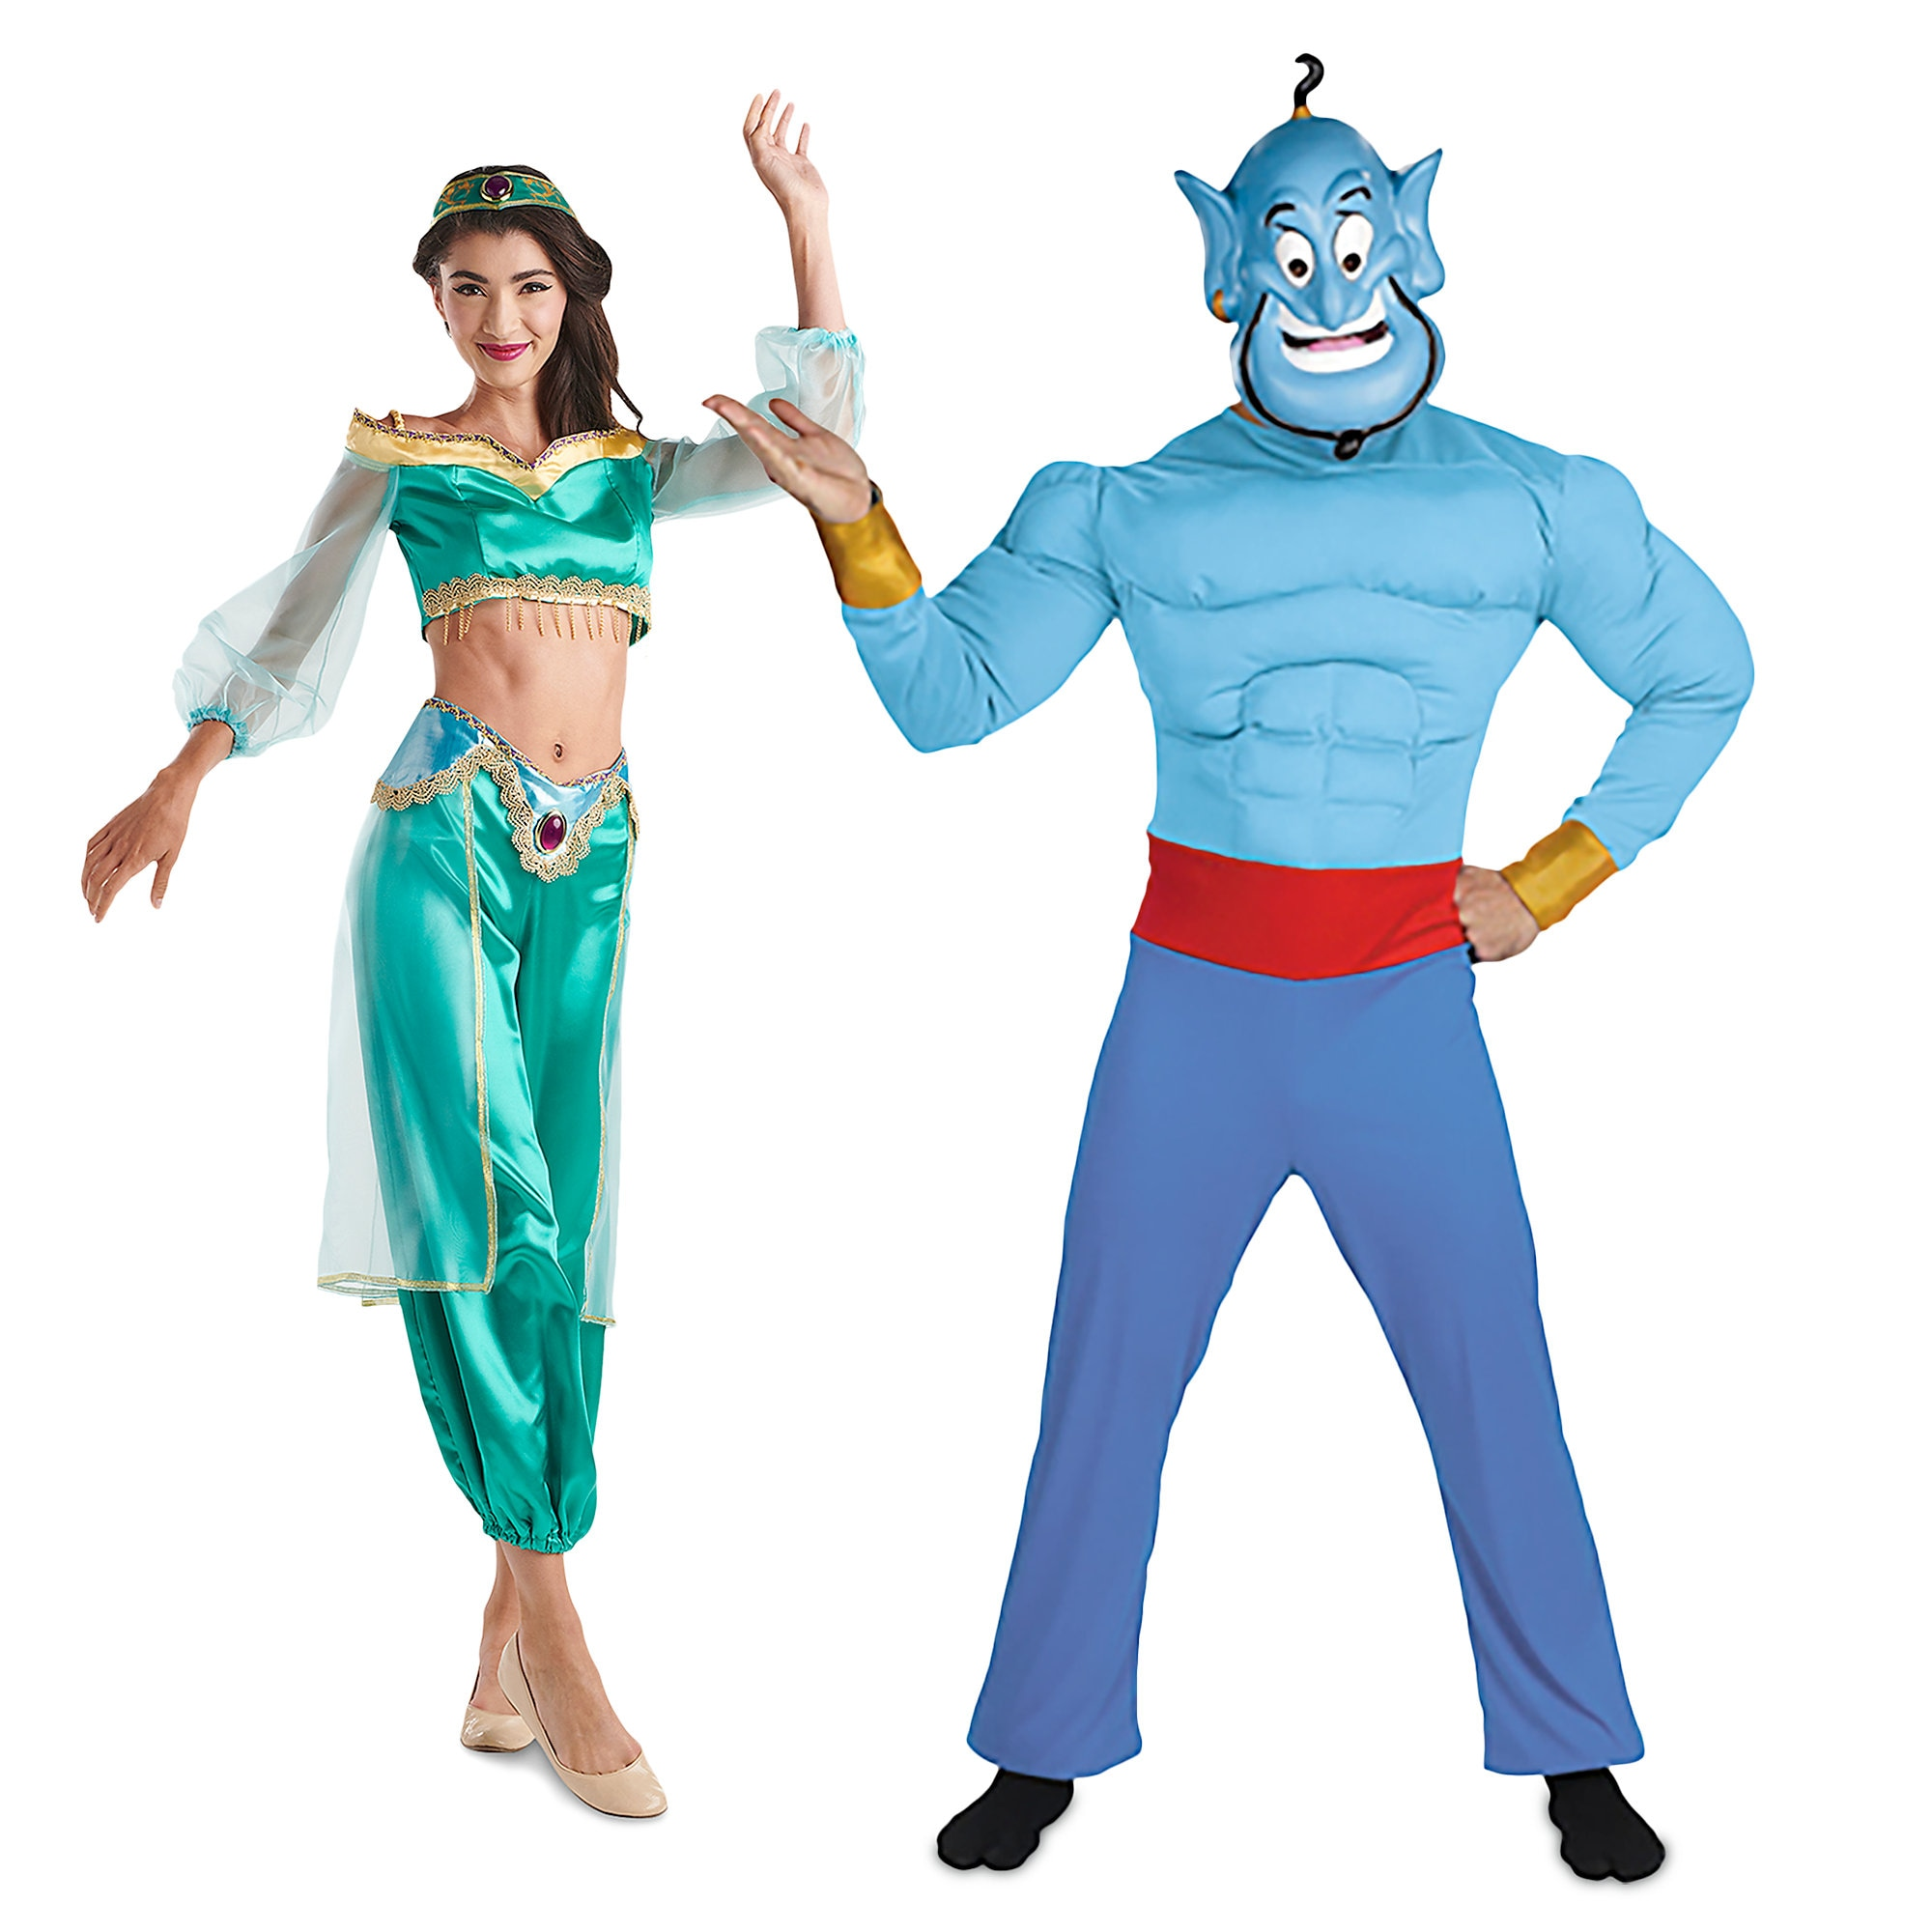 Aladdin Costume Collection for Adults